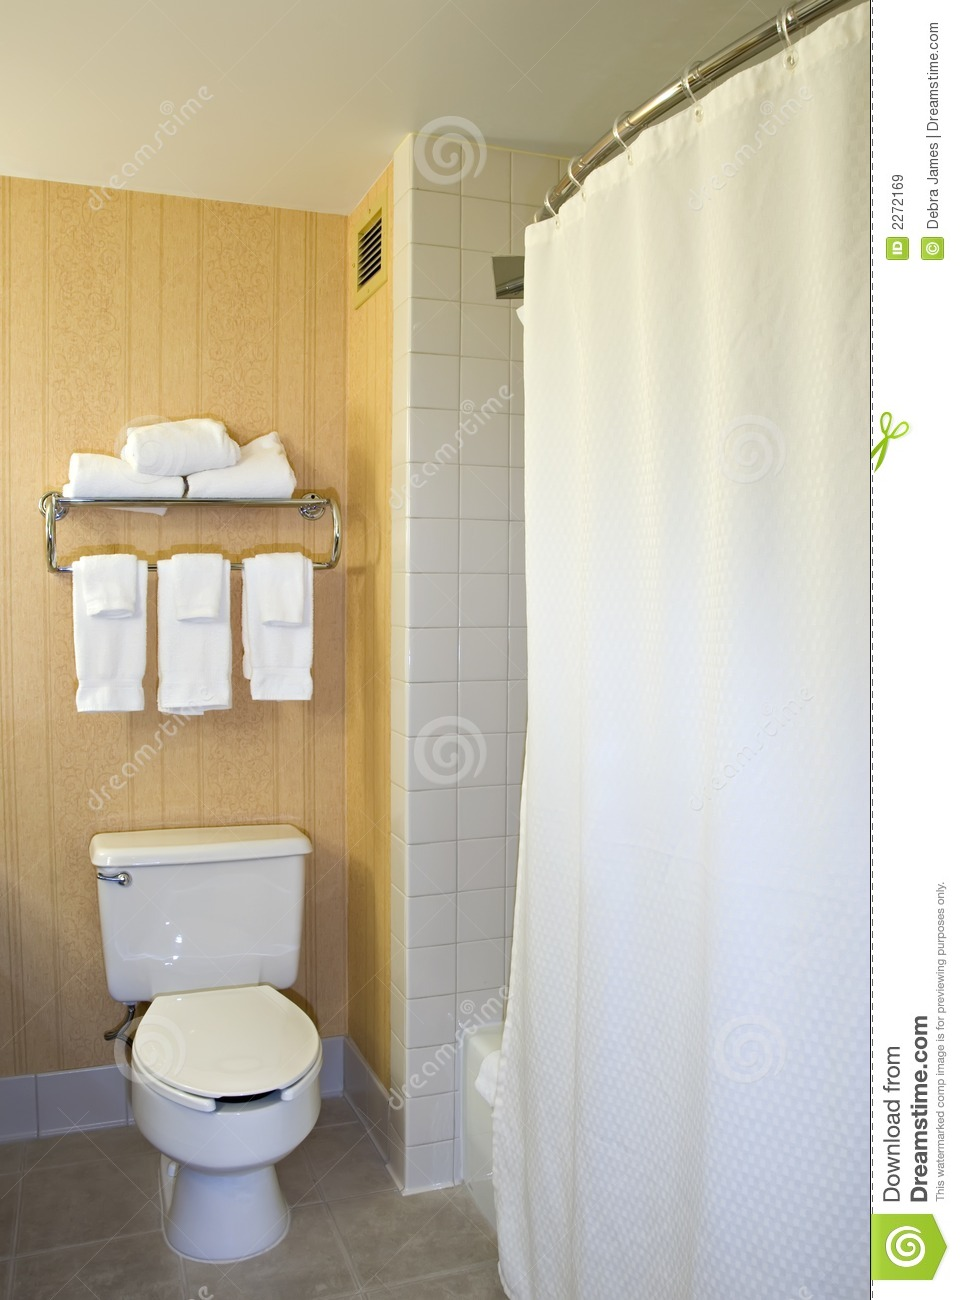 Toilet, Towel Rack And Shower Stock Image - Image: 2272169